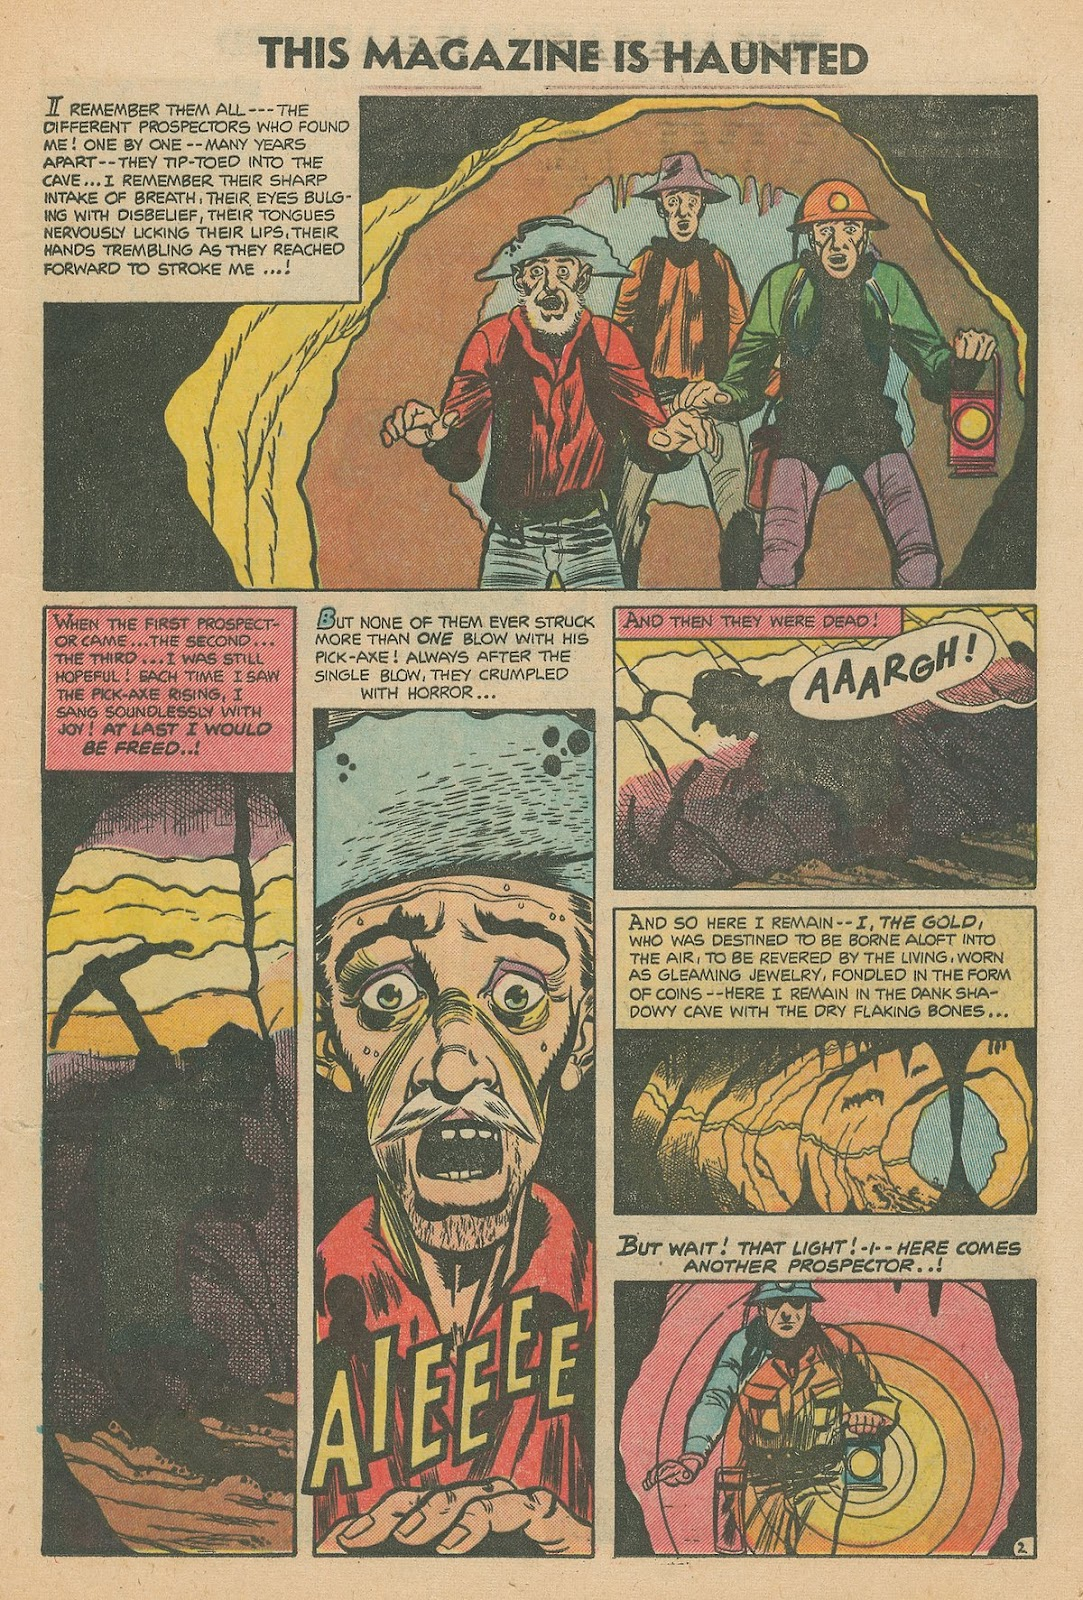 Read online This Magazine Is Haunted comic -  Issue #21 - 17